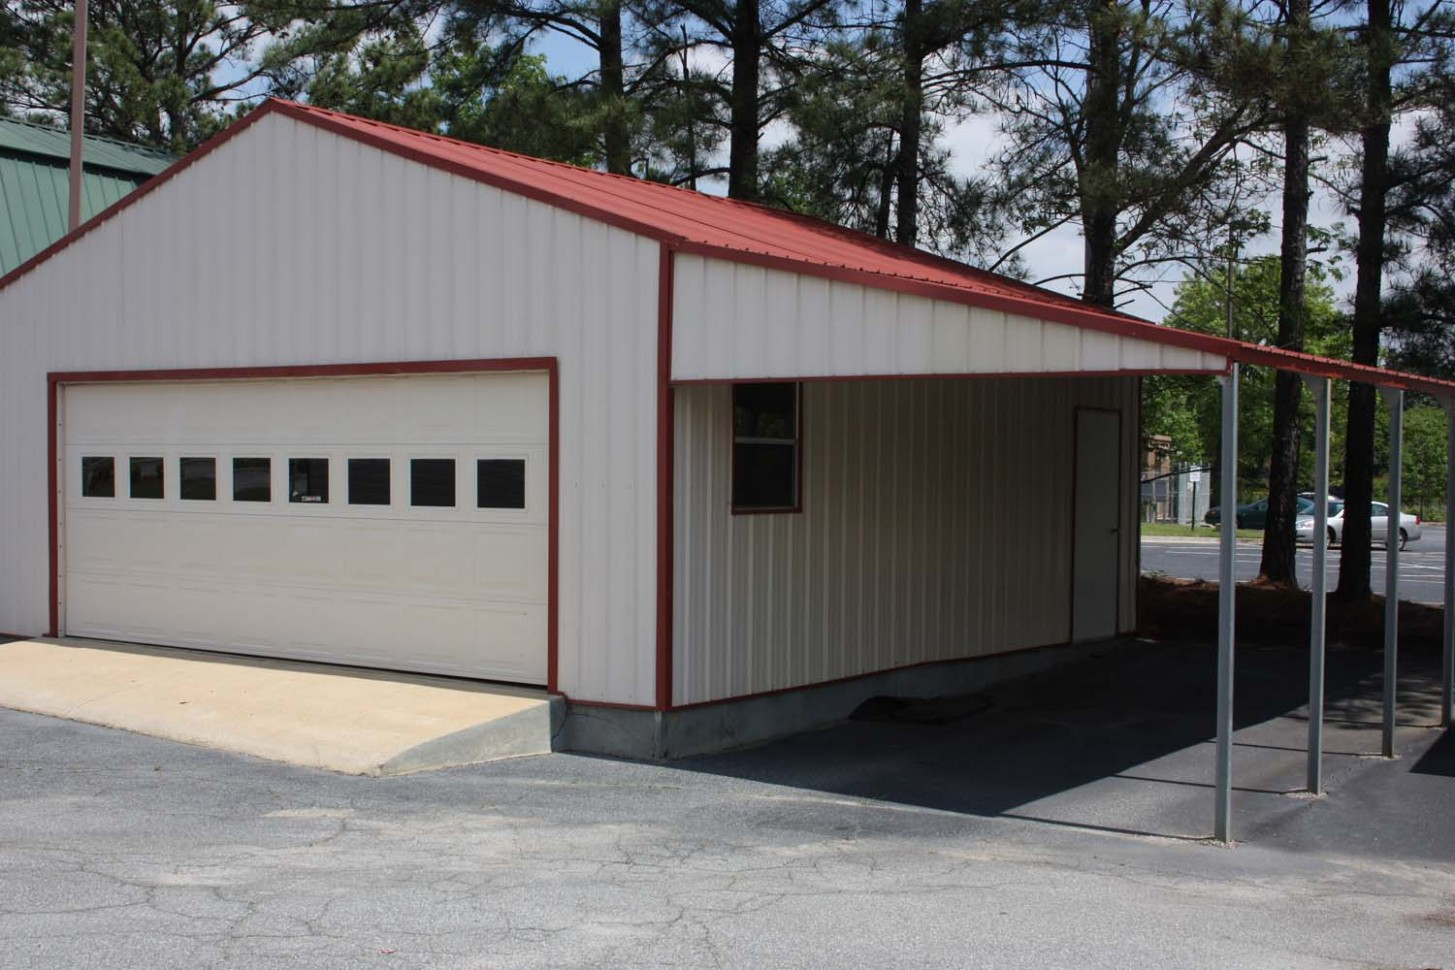 Reasons Why Metal Carports And Garages Is Getting More Popular In The Past Decade | metal carports and garages